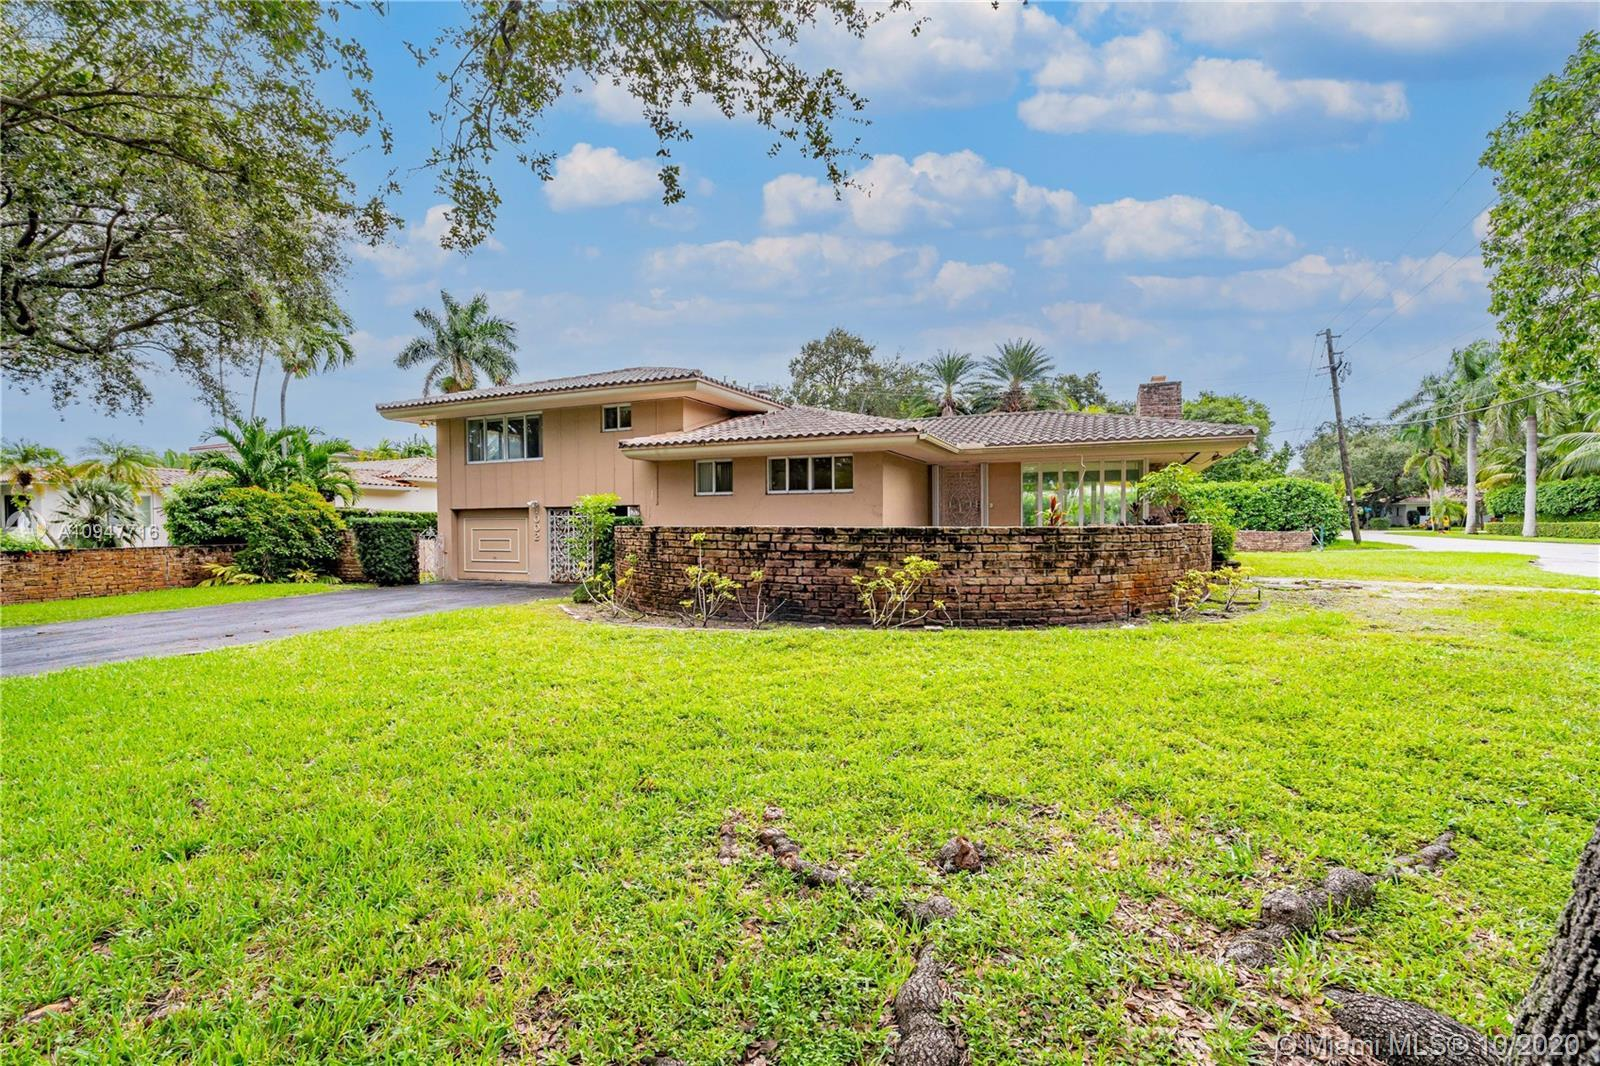 OUTSTANDING VALUE IN THIS MID-CENTURY MIAMI SHORES HOME EAST OF BISCAYNE BLVD.  SPACIOUS AND BRIGHT,